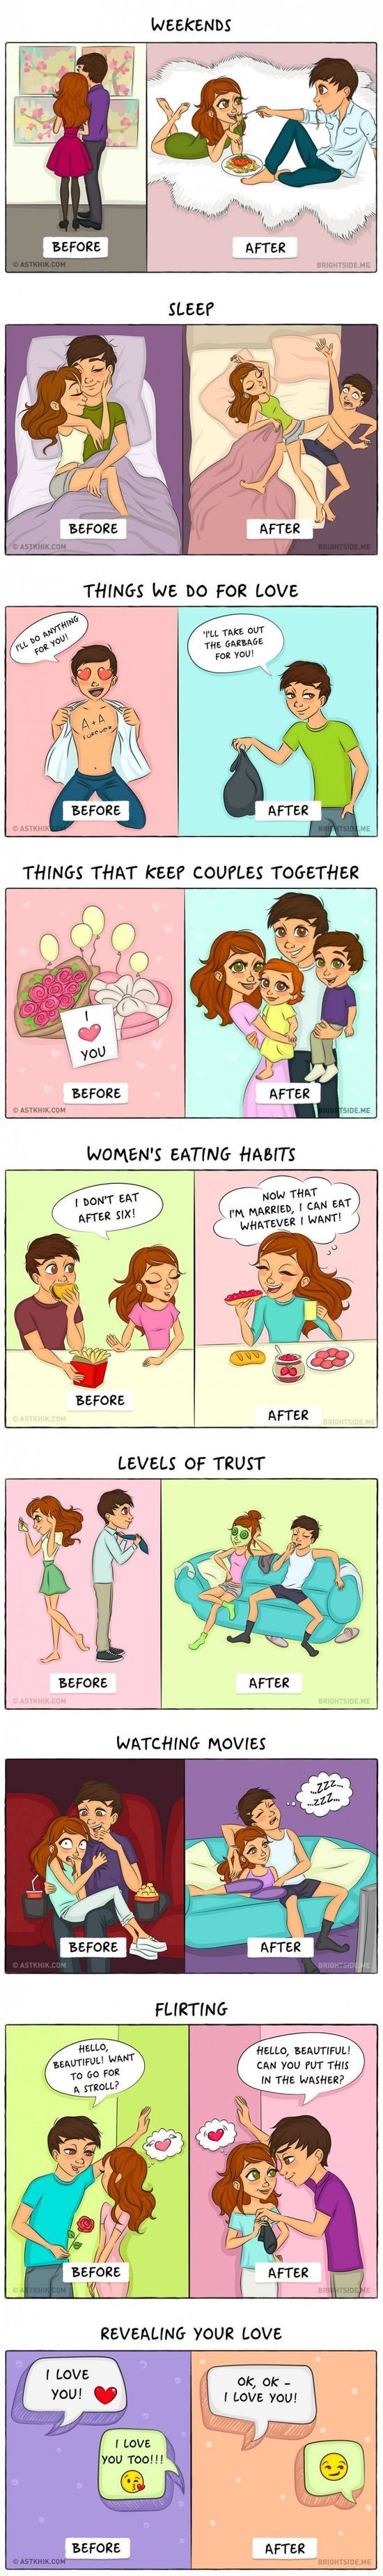 Dating Vs Marriage #lol #haha #funny